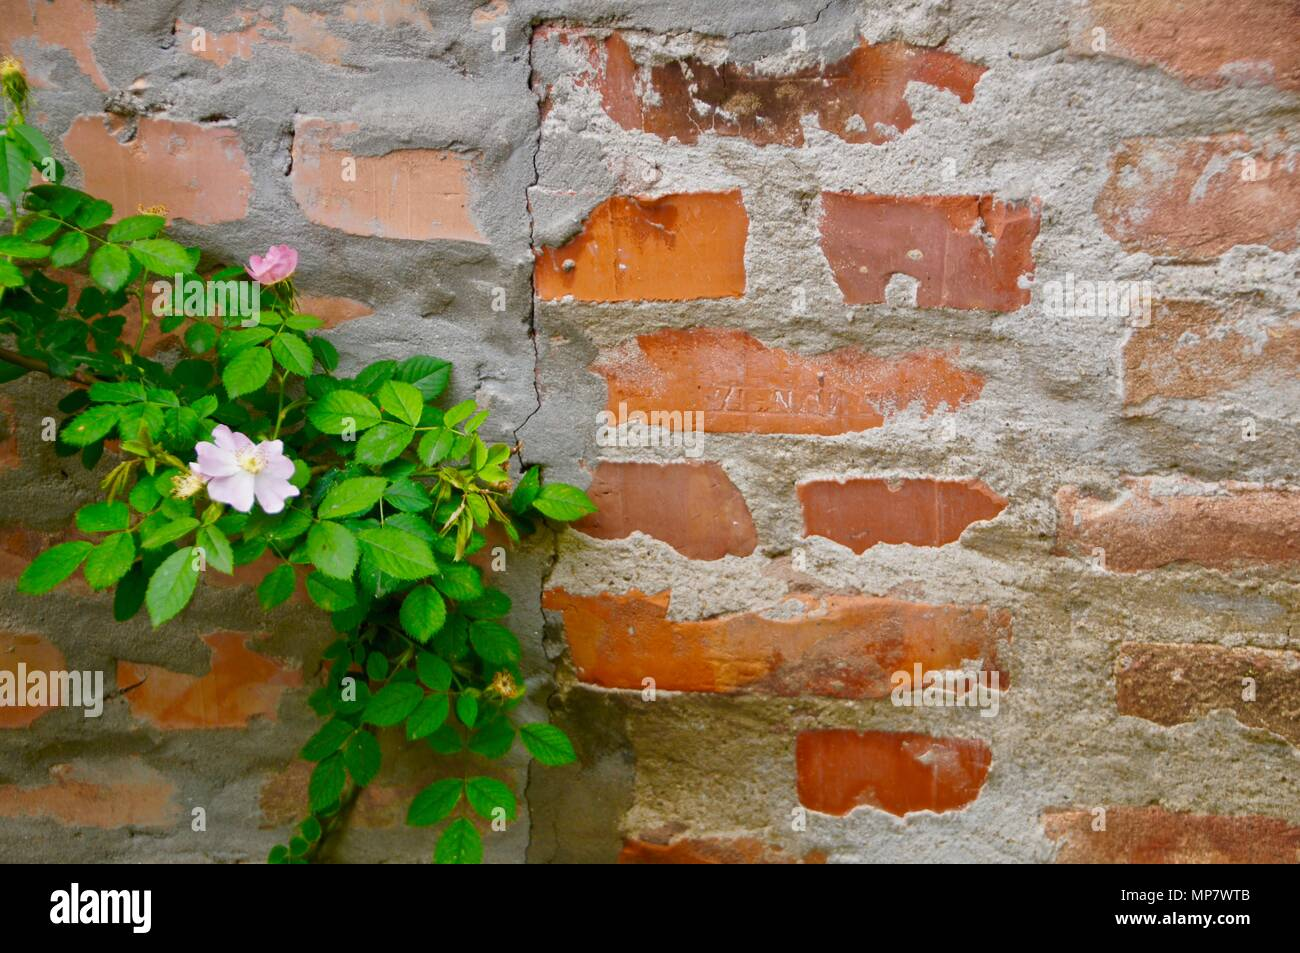 Flower power of resilience - Stock Image